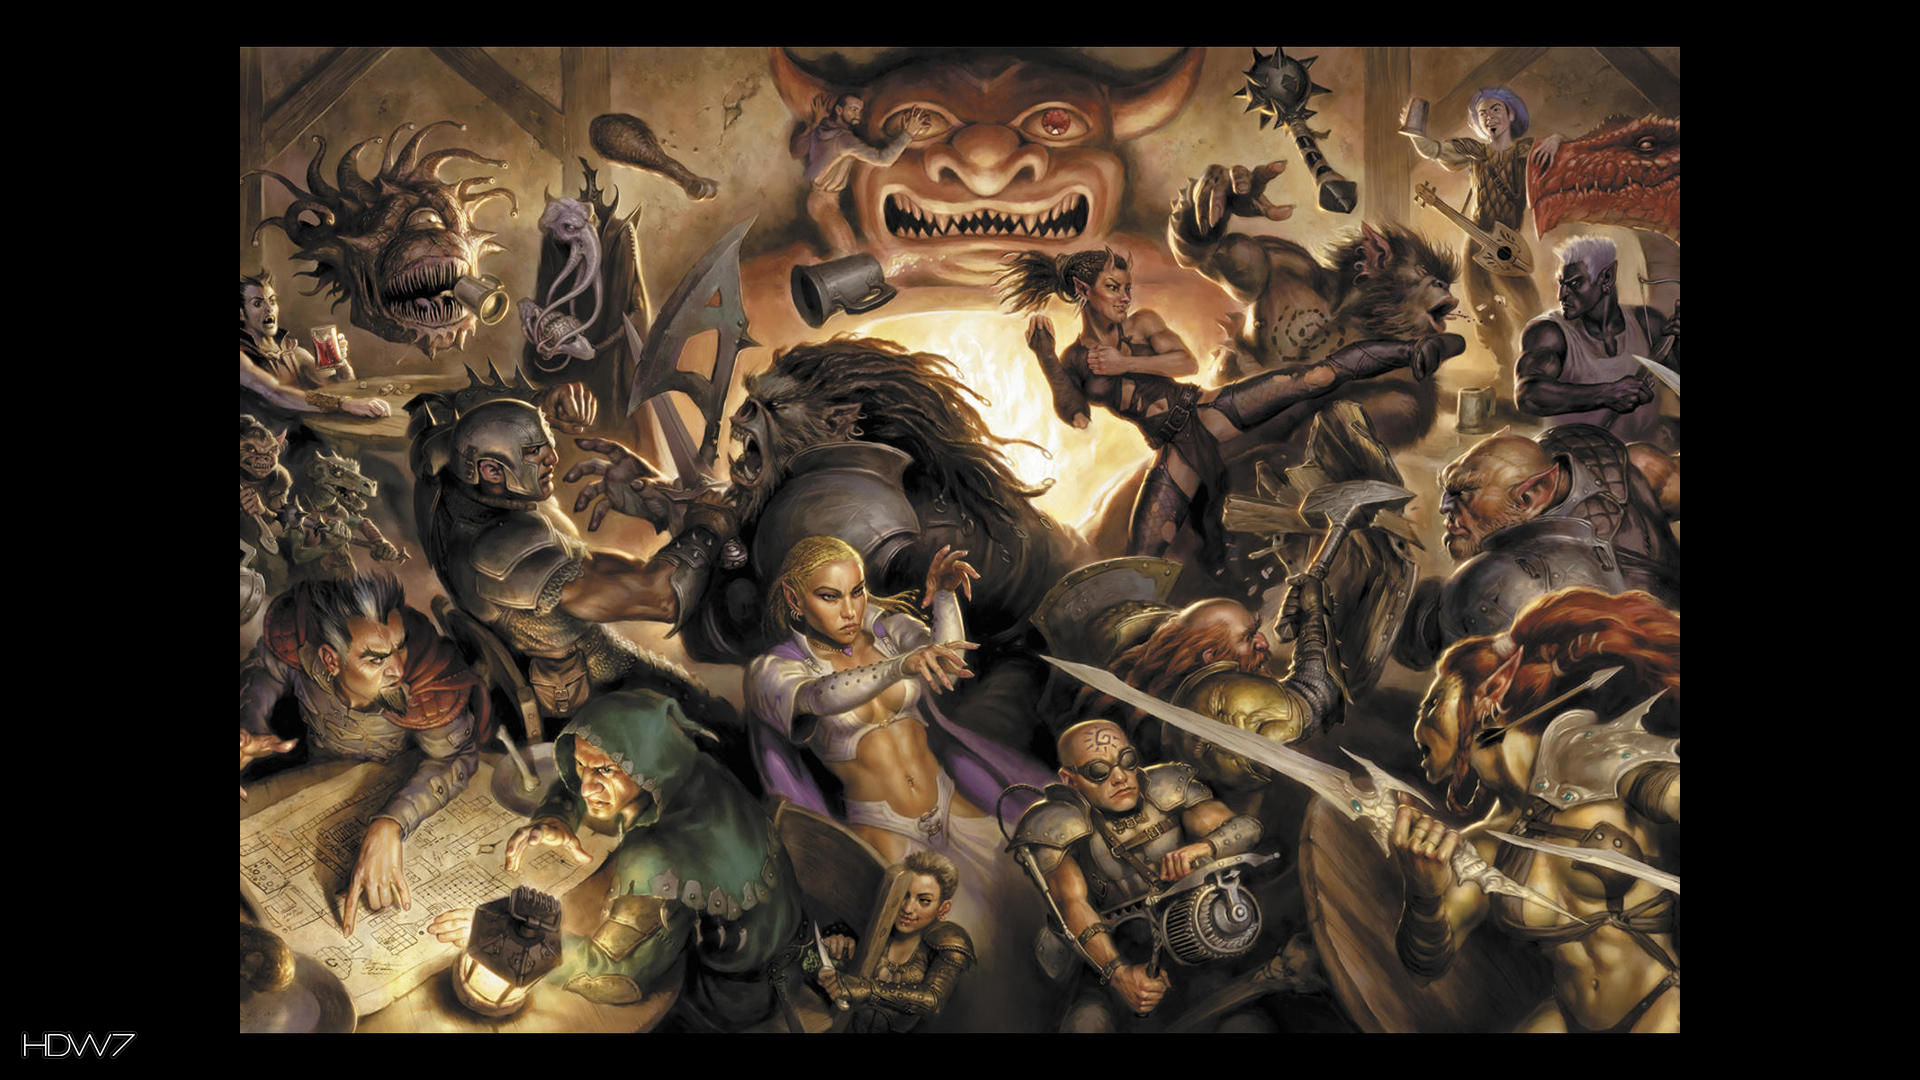 dungeons and dragons wallpaper HD 1920x1080